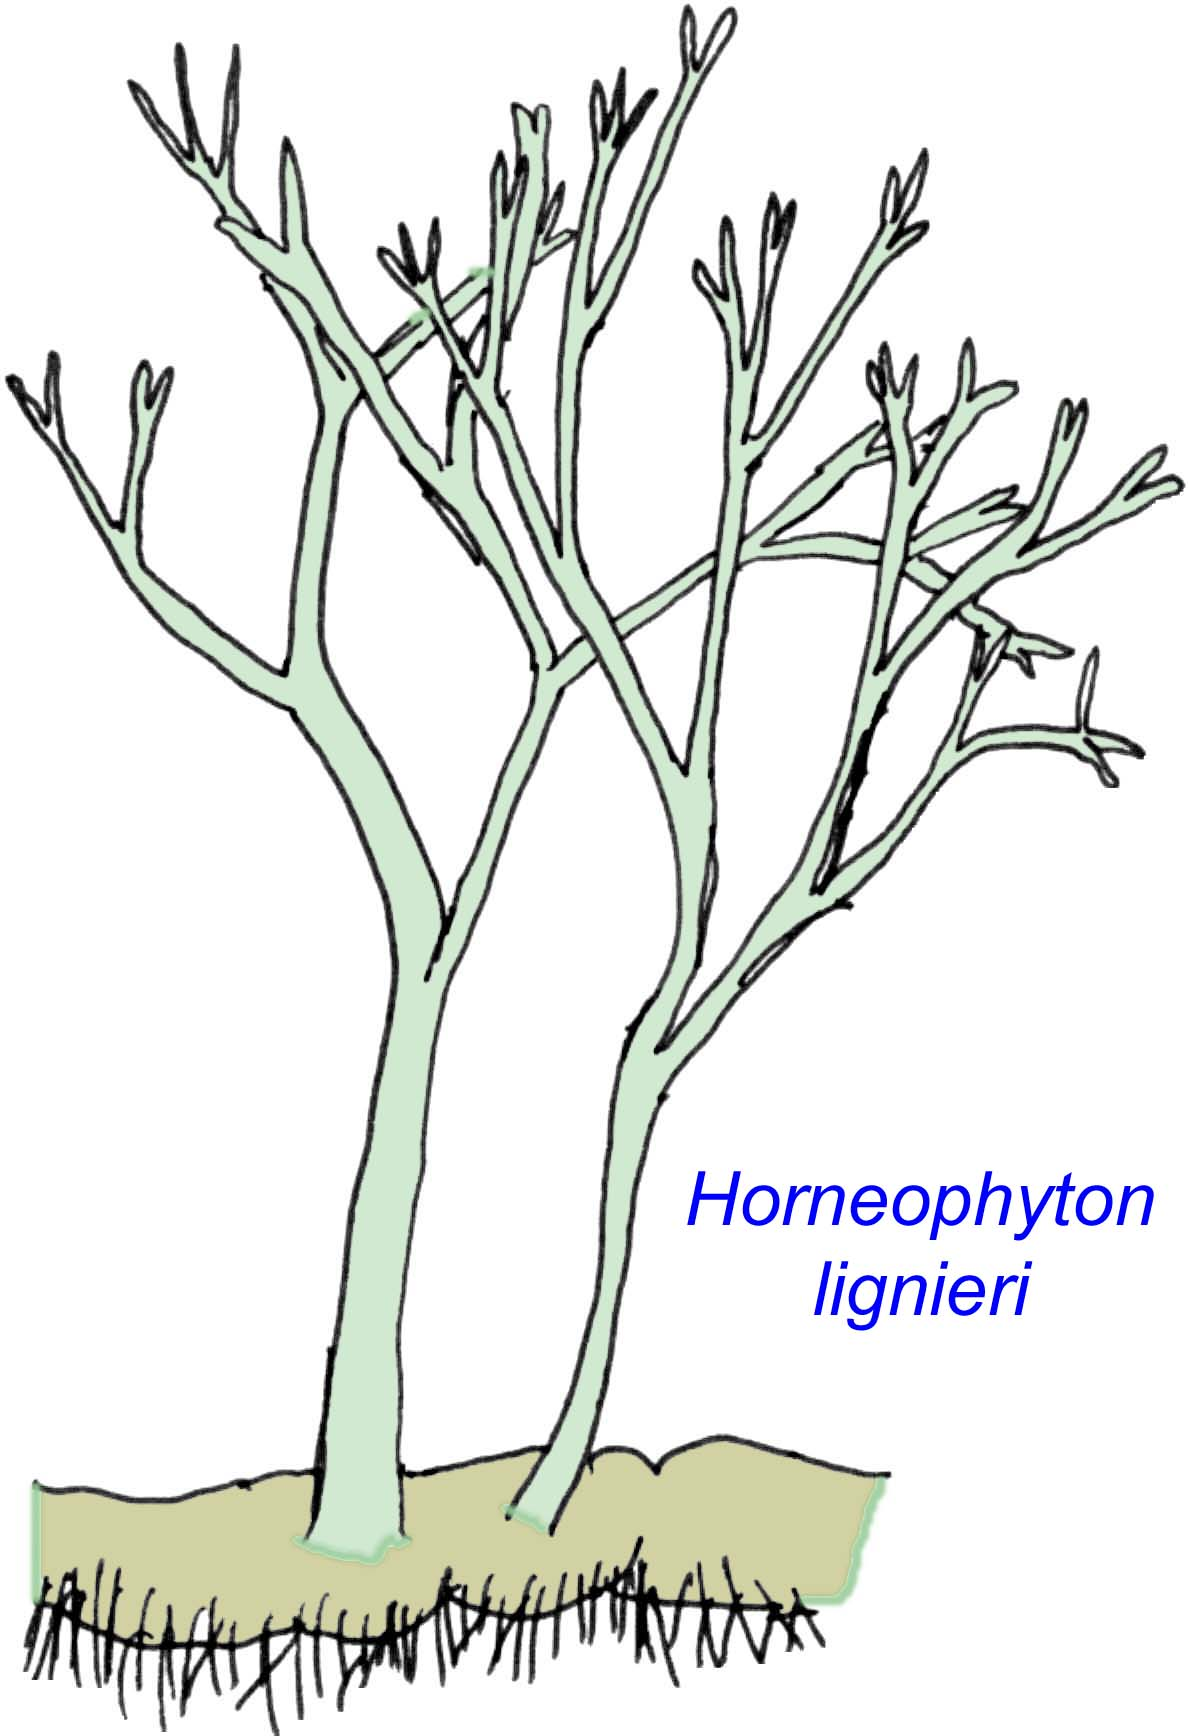 Vascular System In Plants Primitive vascular plants: Xylem And Phloem In Plants